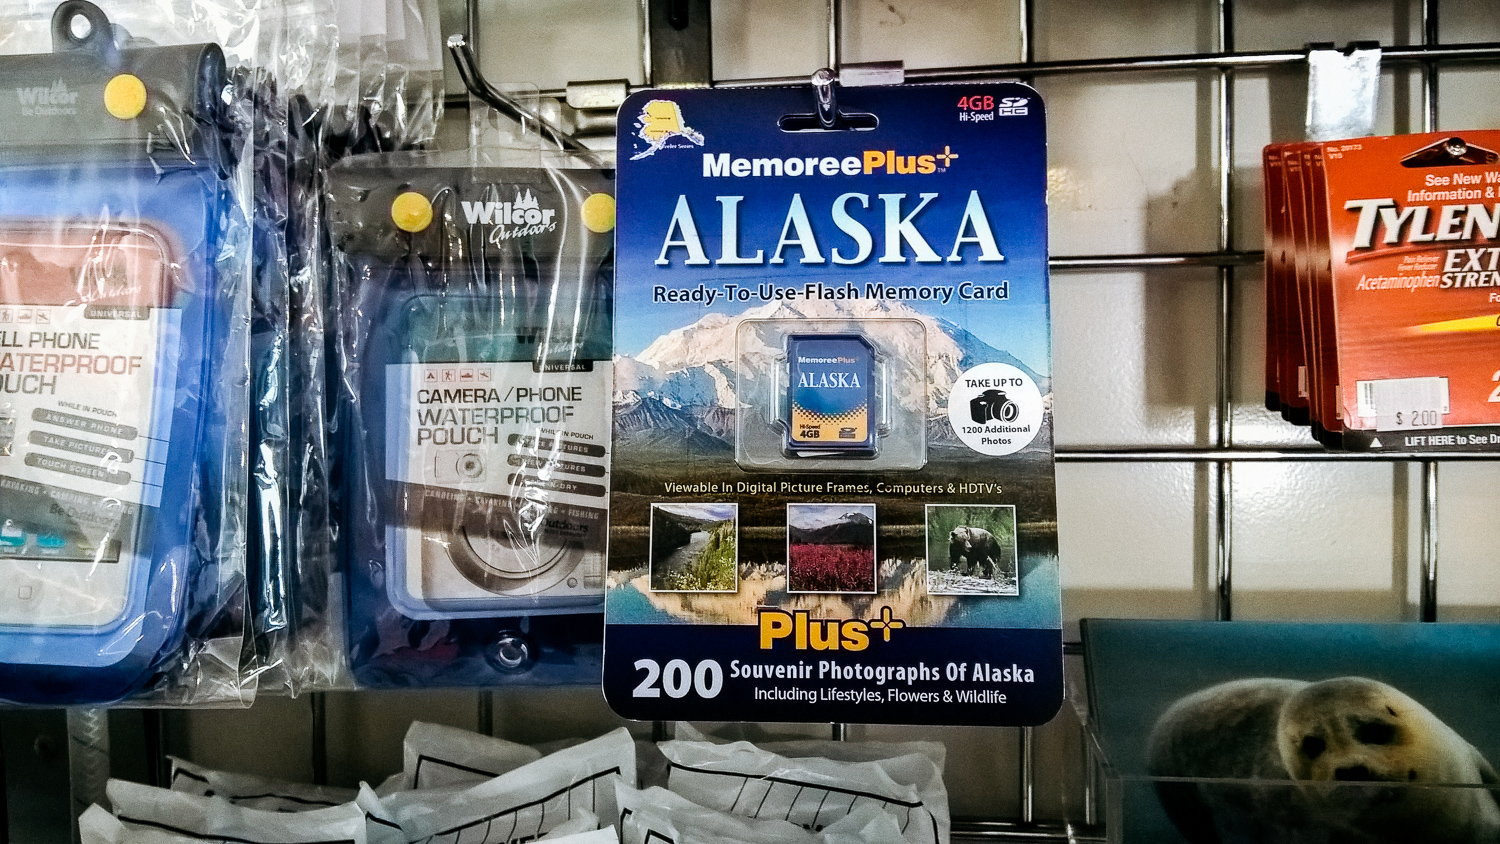 I thought it was funny they were selling this memory card that comes pre-loaded with 200 photos of Alaska in case you were bad at photography.(Shot with the Nokia Lumia 640 XL)